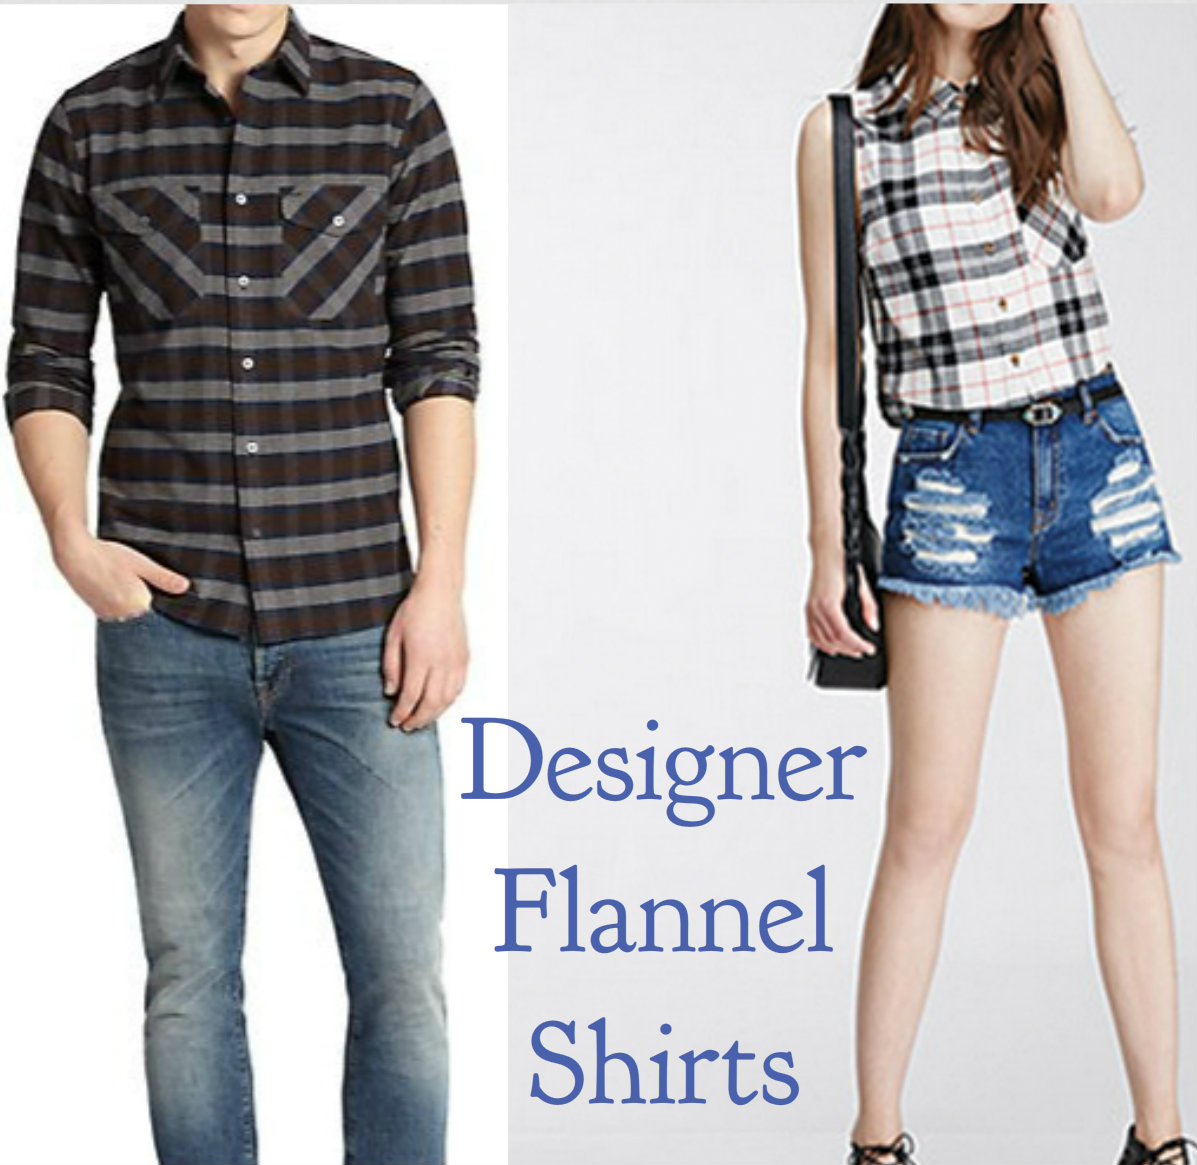 Shine Like A Celeb This Summer With Designer Flannel Shirts